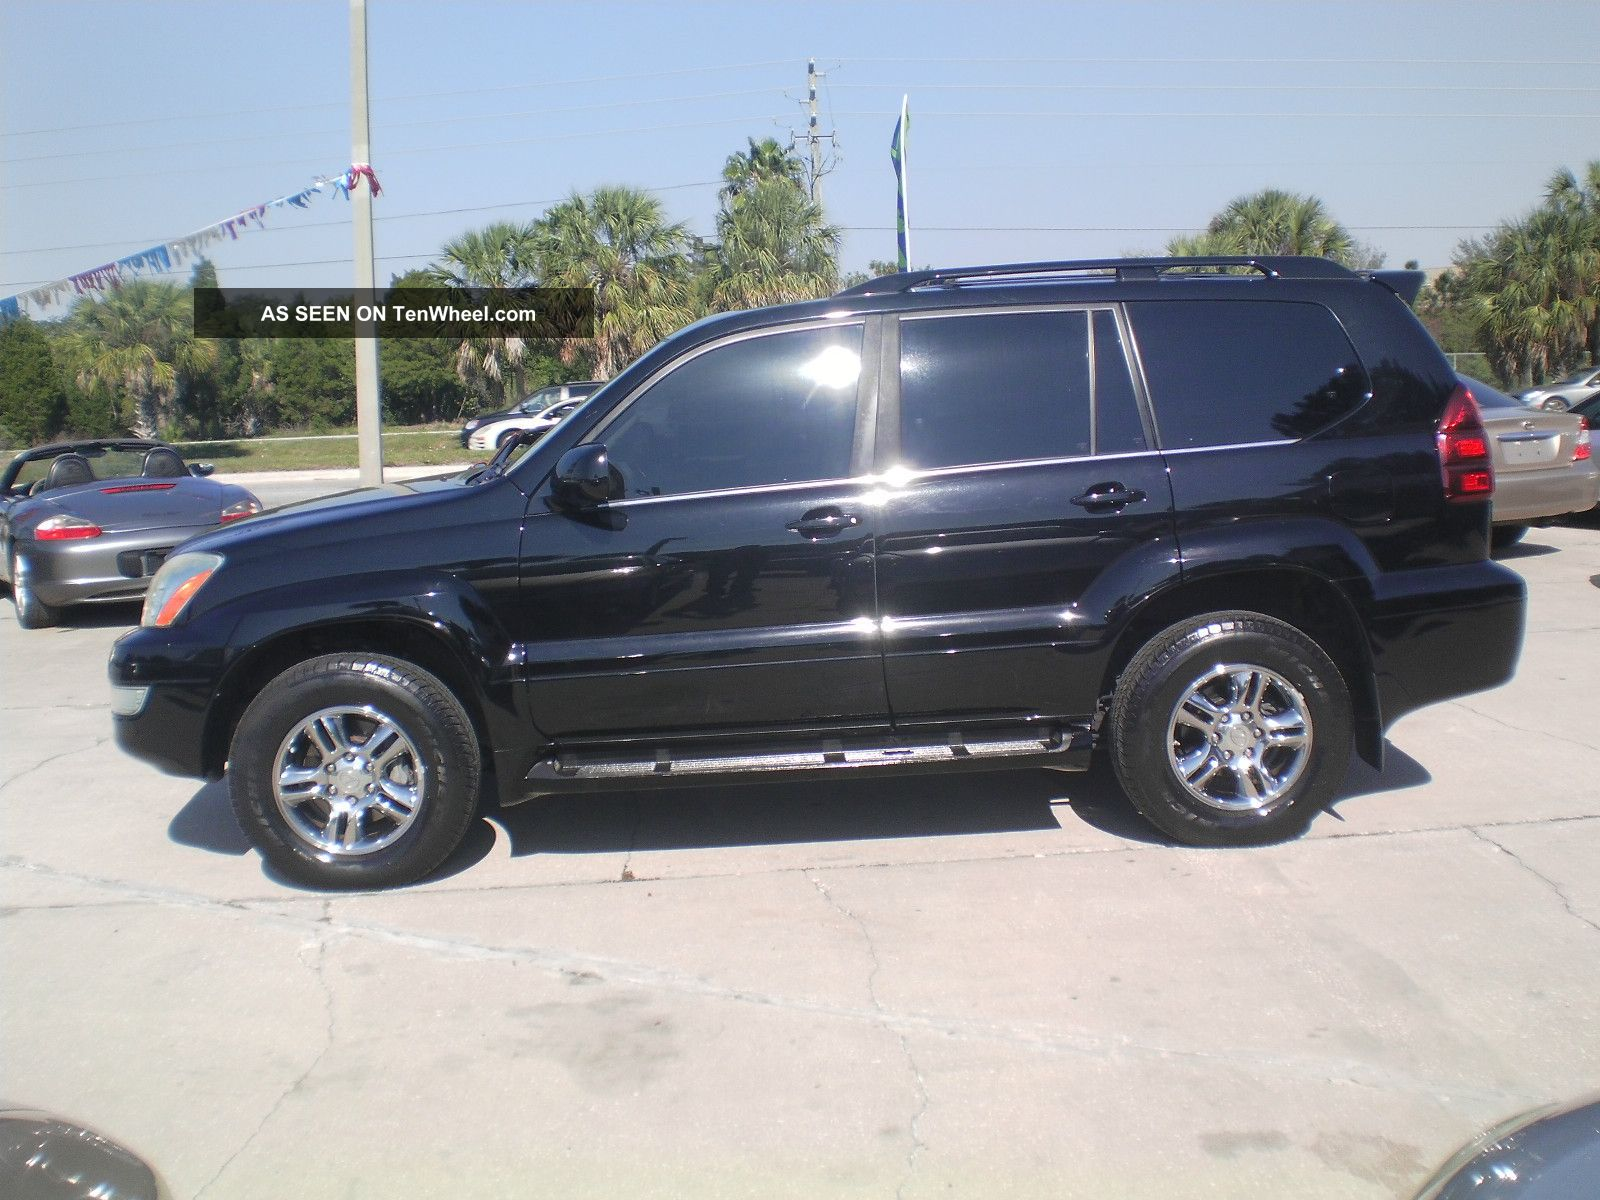 2004 lexus gx 470 4wd florida vehicle loaded flawless. Black Bedroom Furniture Sets. Home Design Ideas